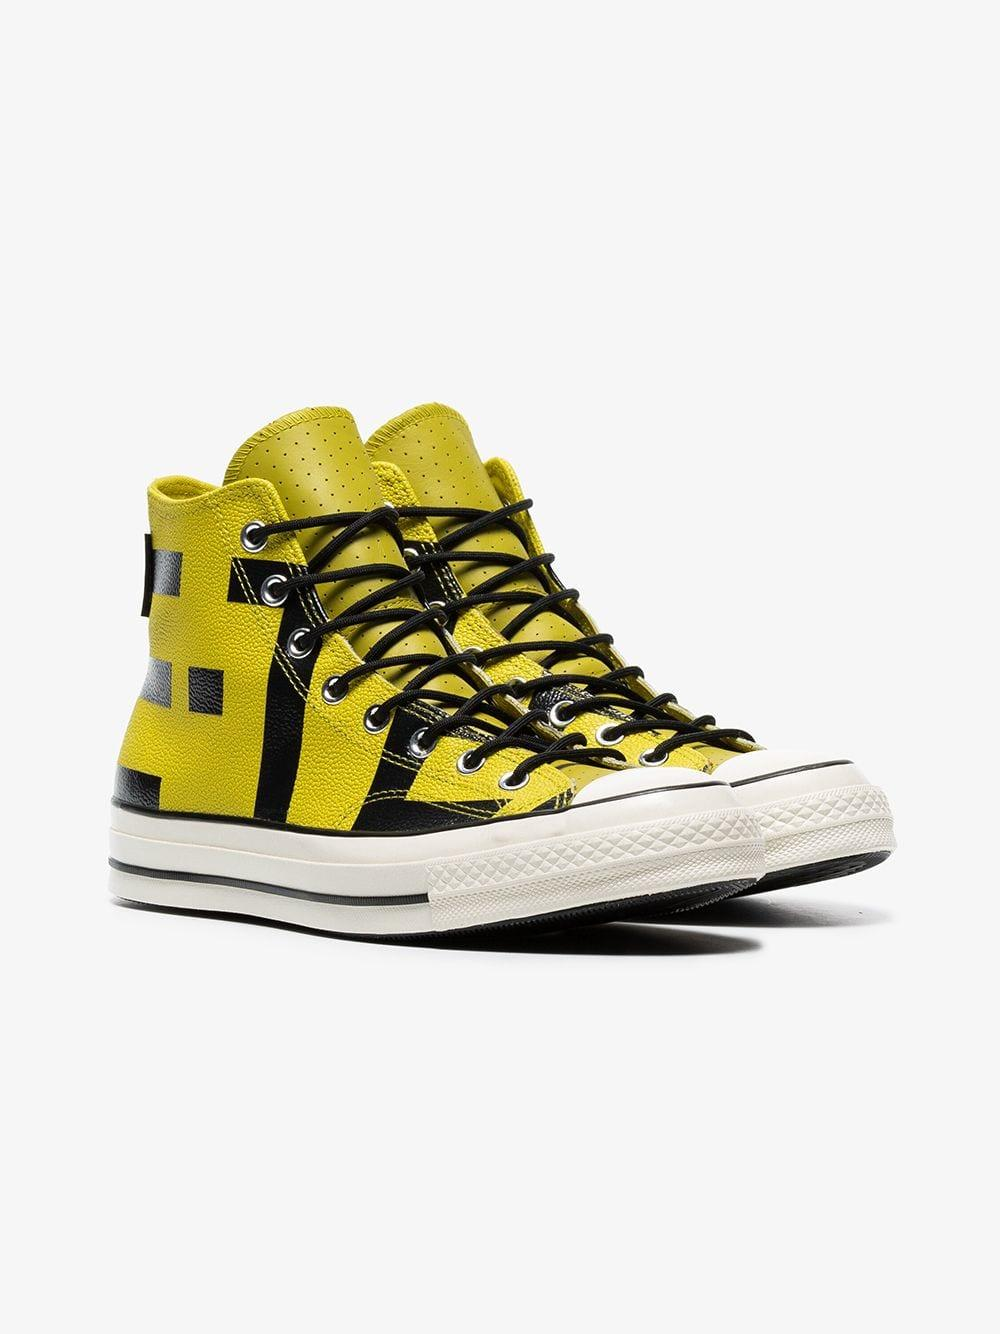 055dcf766ea Lyst - Converse Yellow Chuck Taylor Goretex Sneakers in Yellow for ...